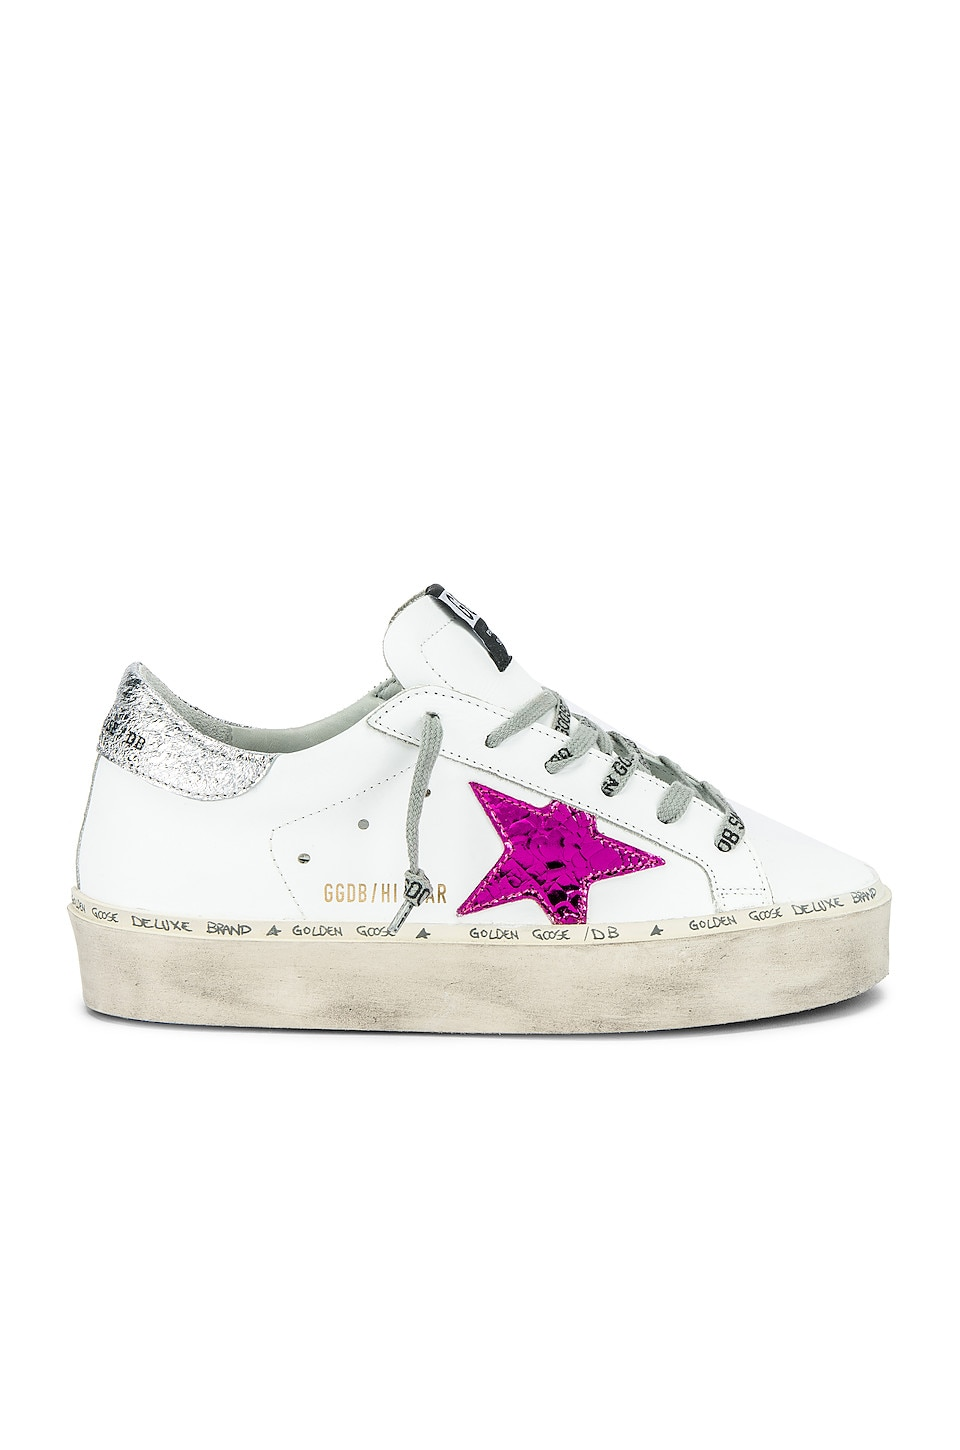 golden goose white and pink